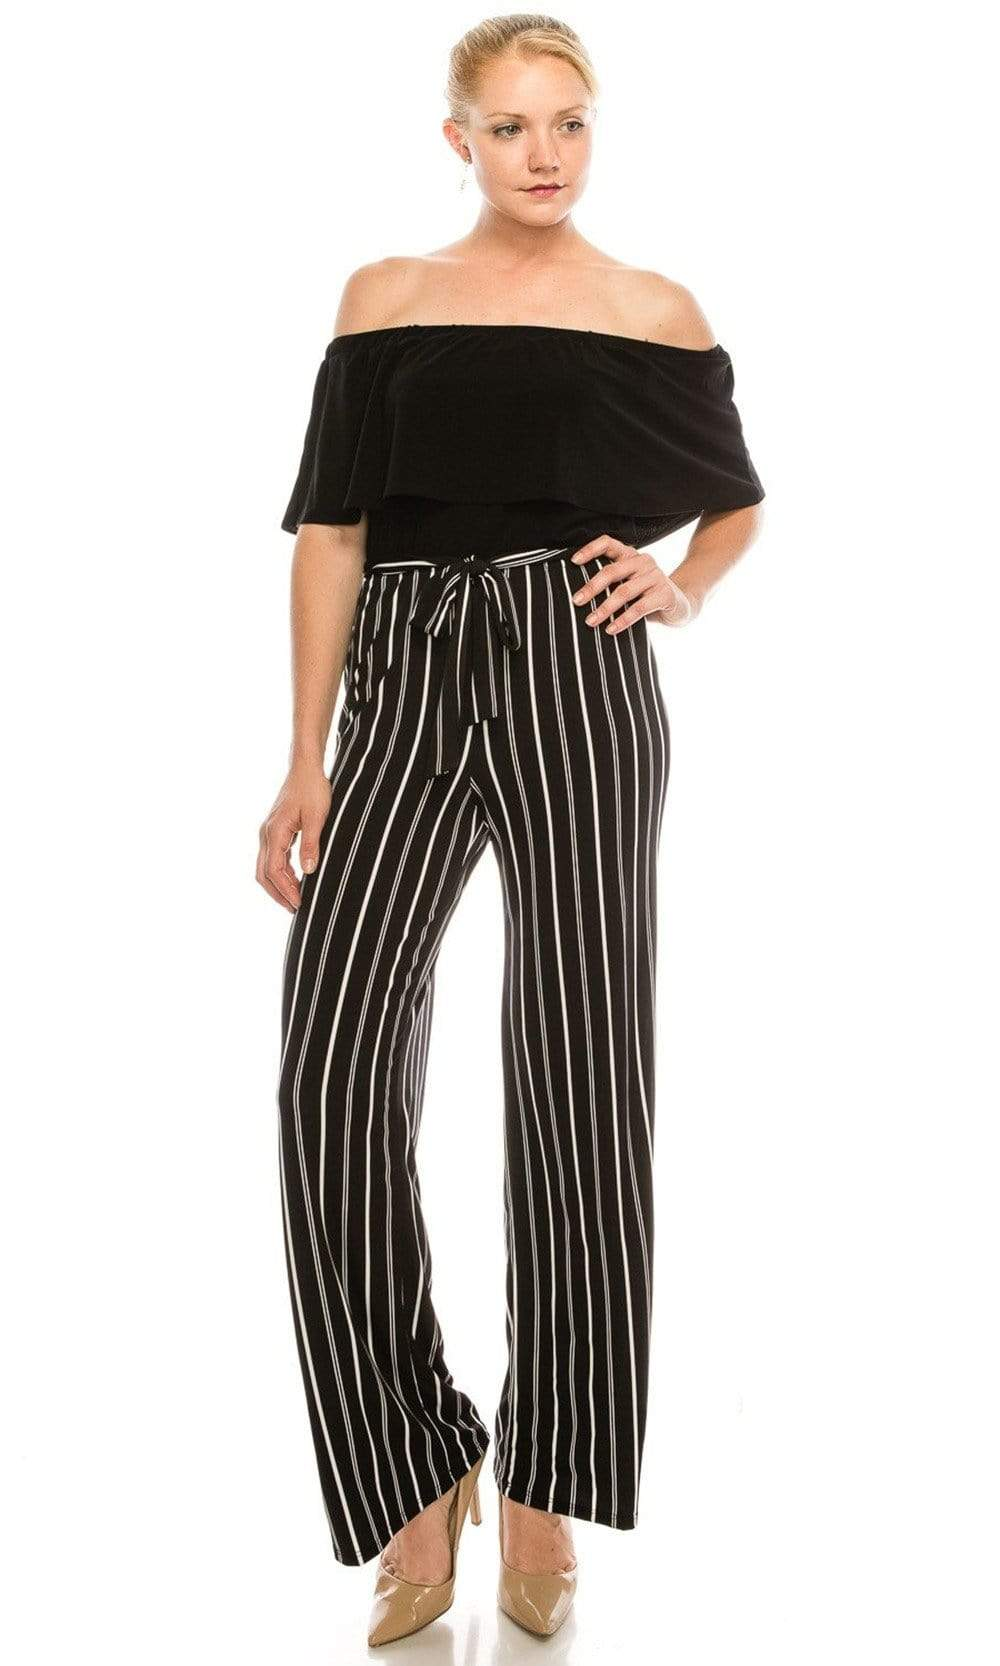 Bebe - 70134E Off-Shoulder Striped Jumpsuit from Bebe